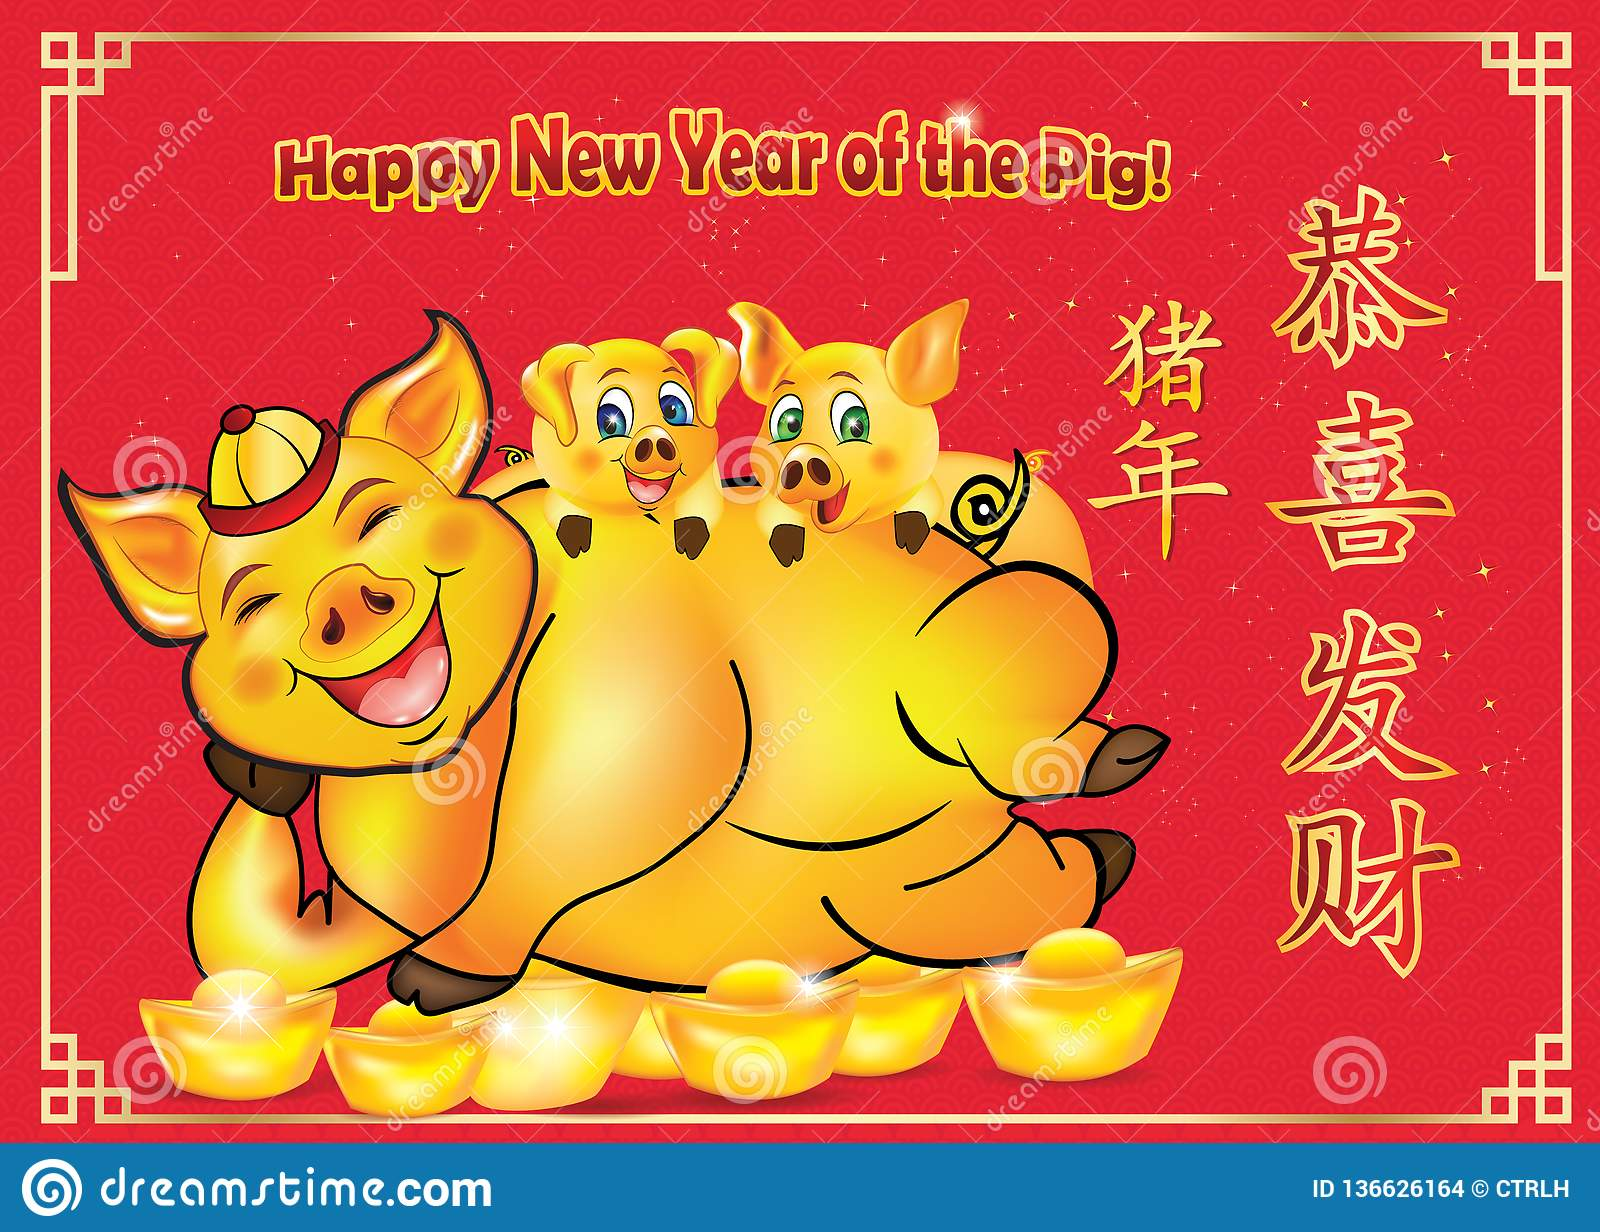 Happy Chinese New Year Of The Pig 2019 - Traditional